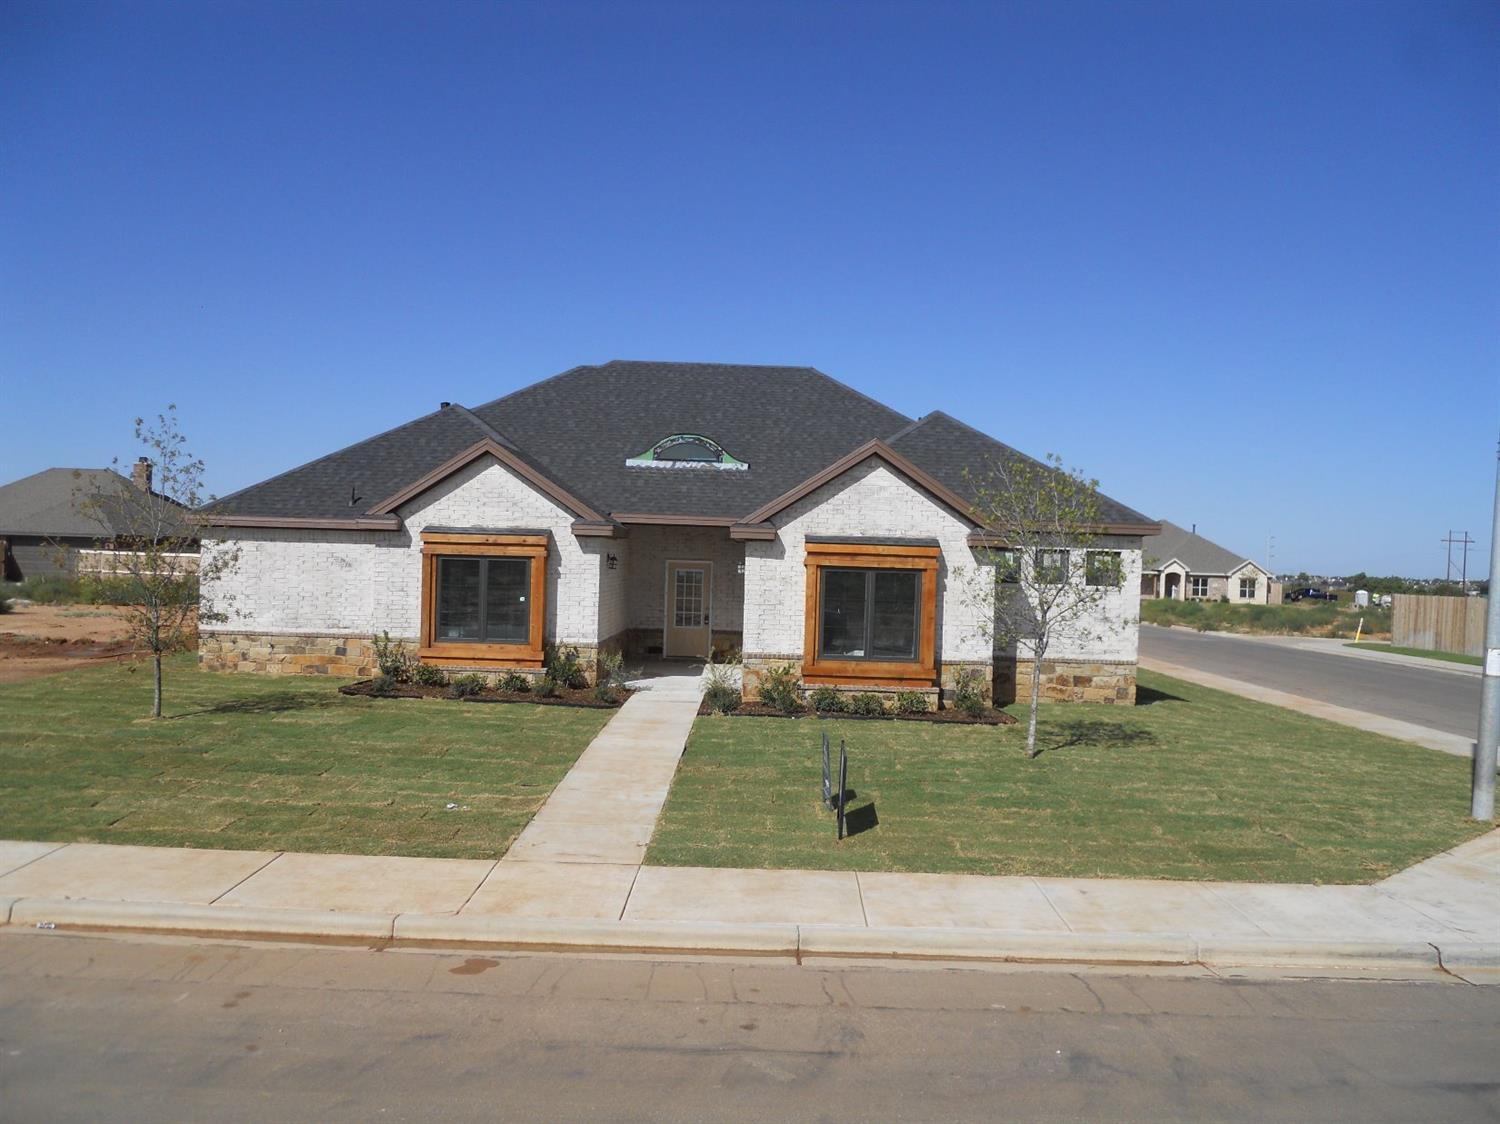 Wonderful Steve Hill Home with unique floorplan and many customs! Great Character with large vaulted ceiling living room with fireplace, open kitchen with walk through dining area with built-in cabinets, kitchen with island and custom wood ceilings and beams, separate 4th bedroom, separate master bedroom with cozy office space in entrance, extra living room in back, and much more!